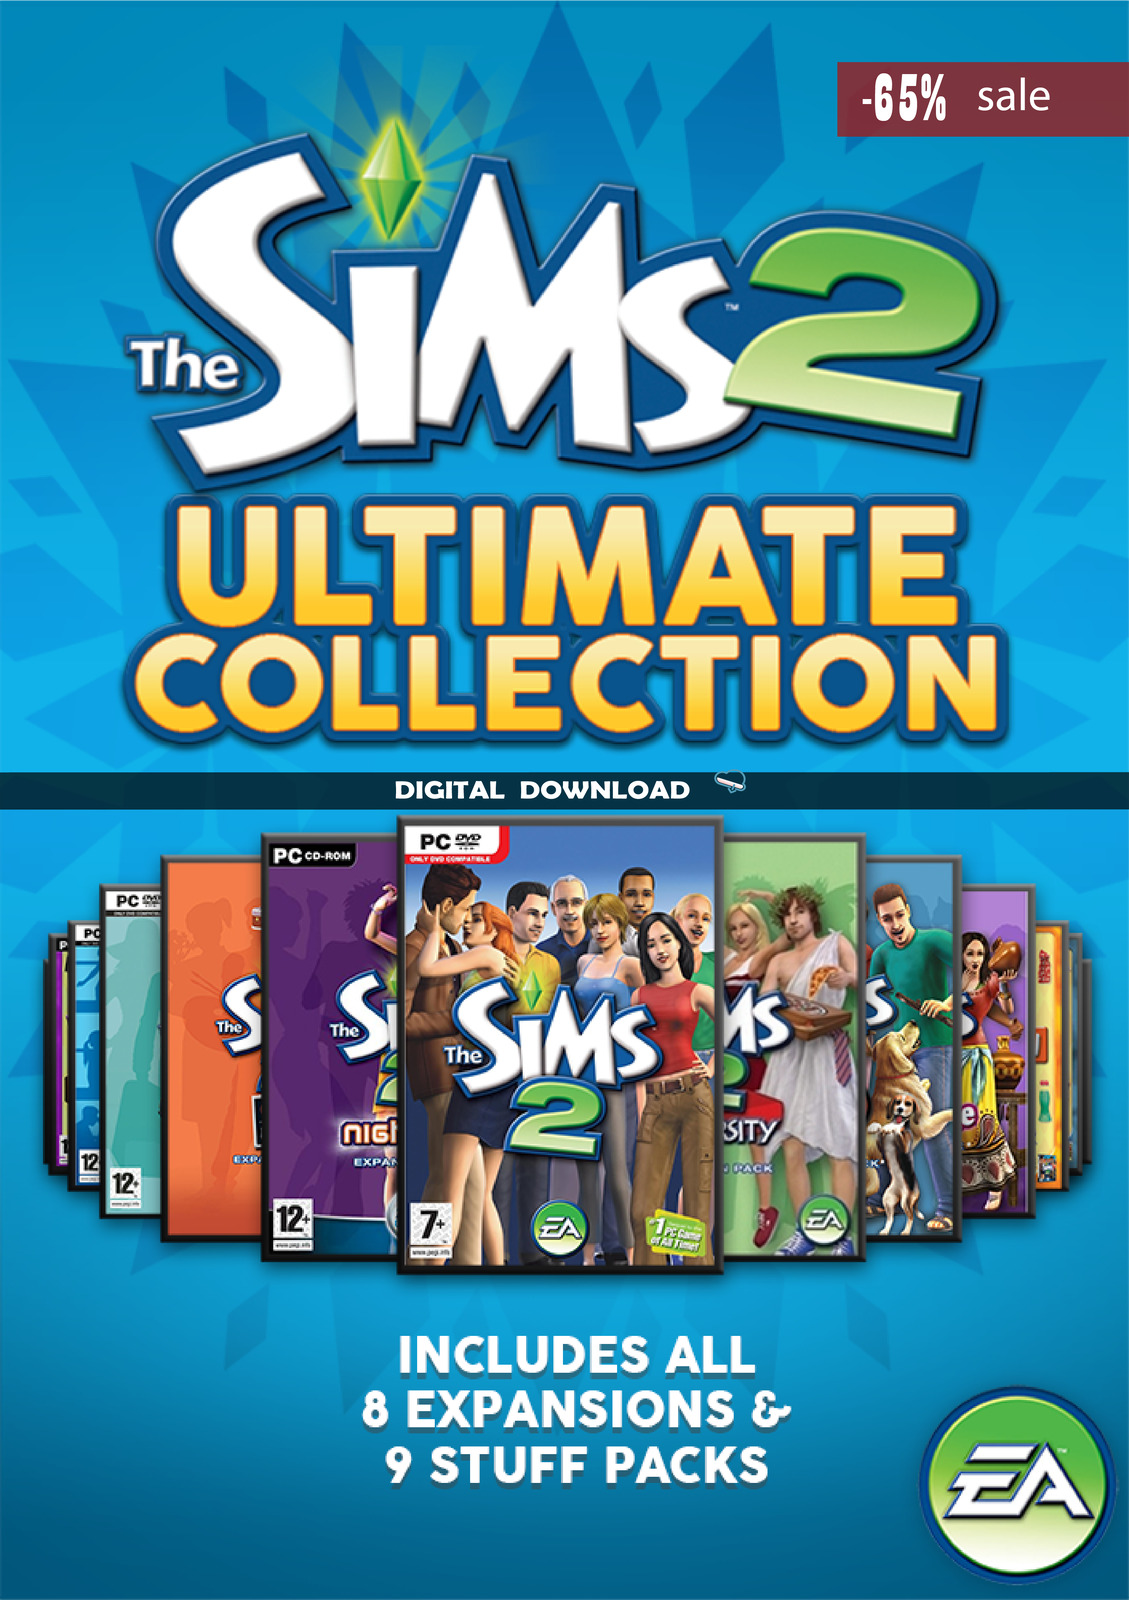 The Sims 2 Ultimate Collection ALL EXPANSIONS PC (Instant Download)